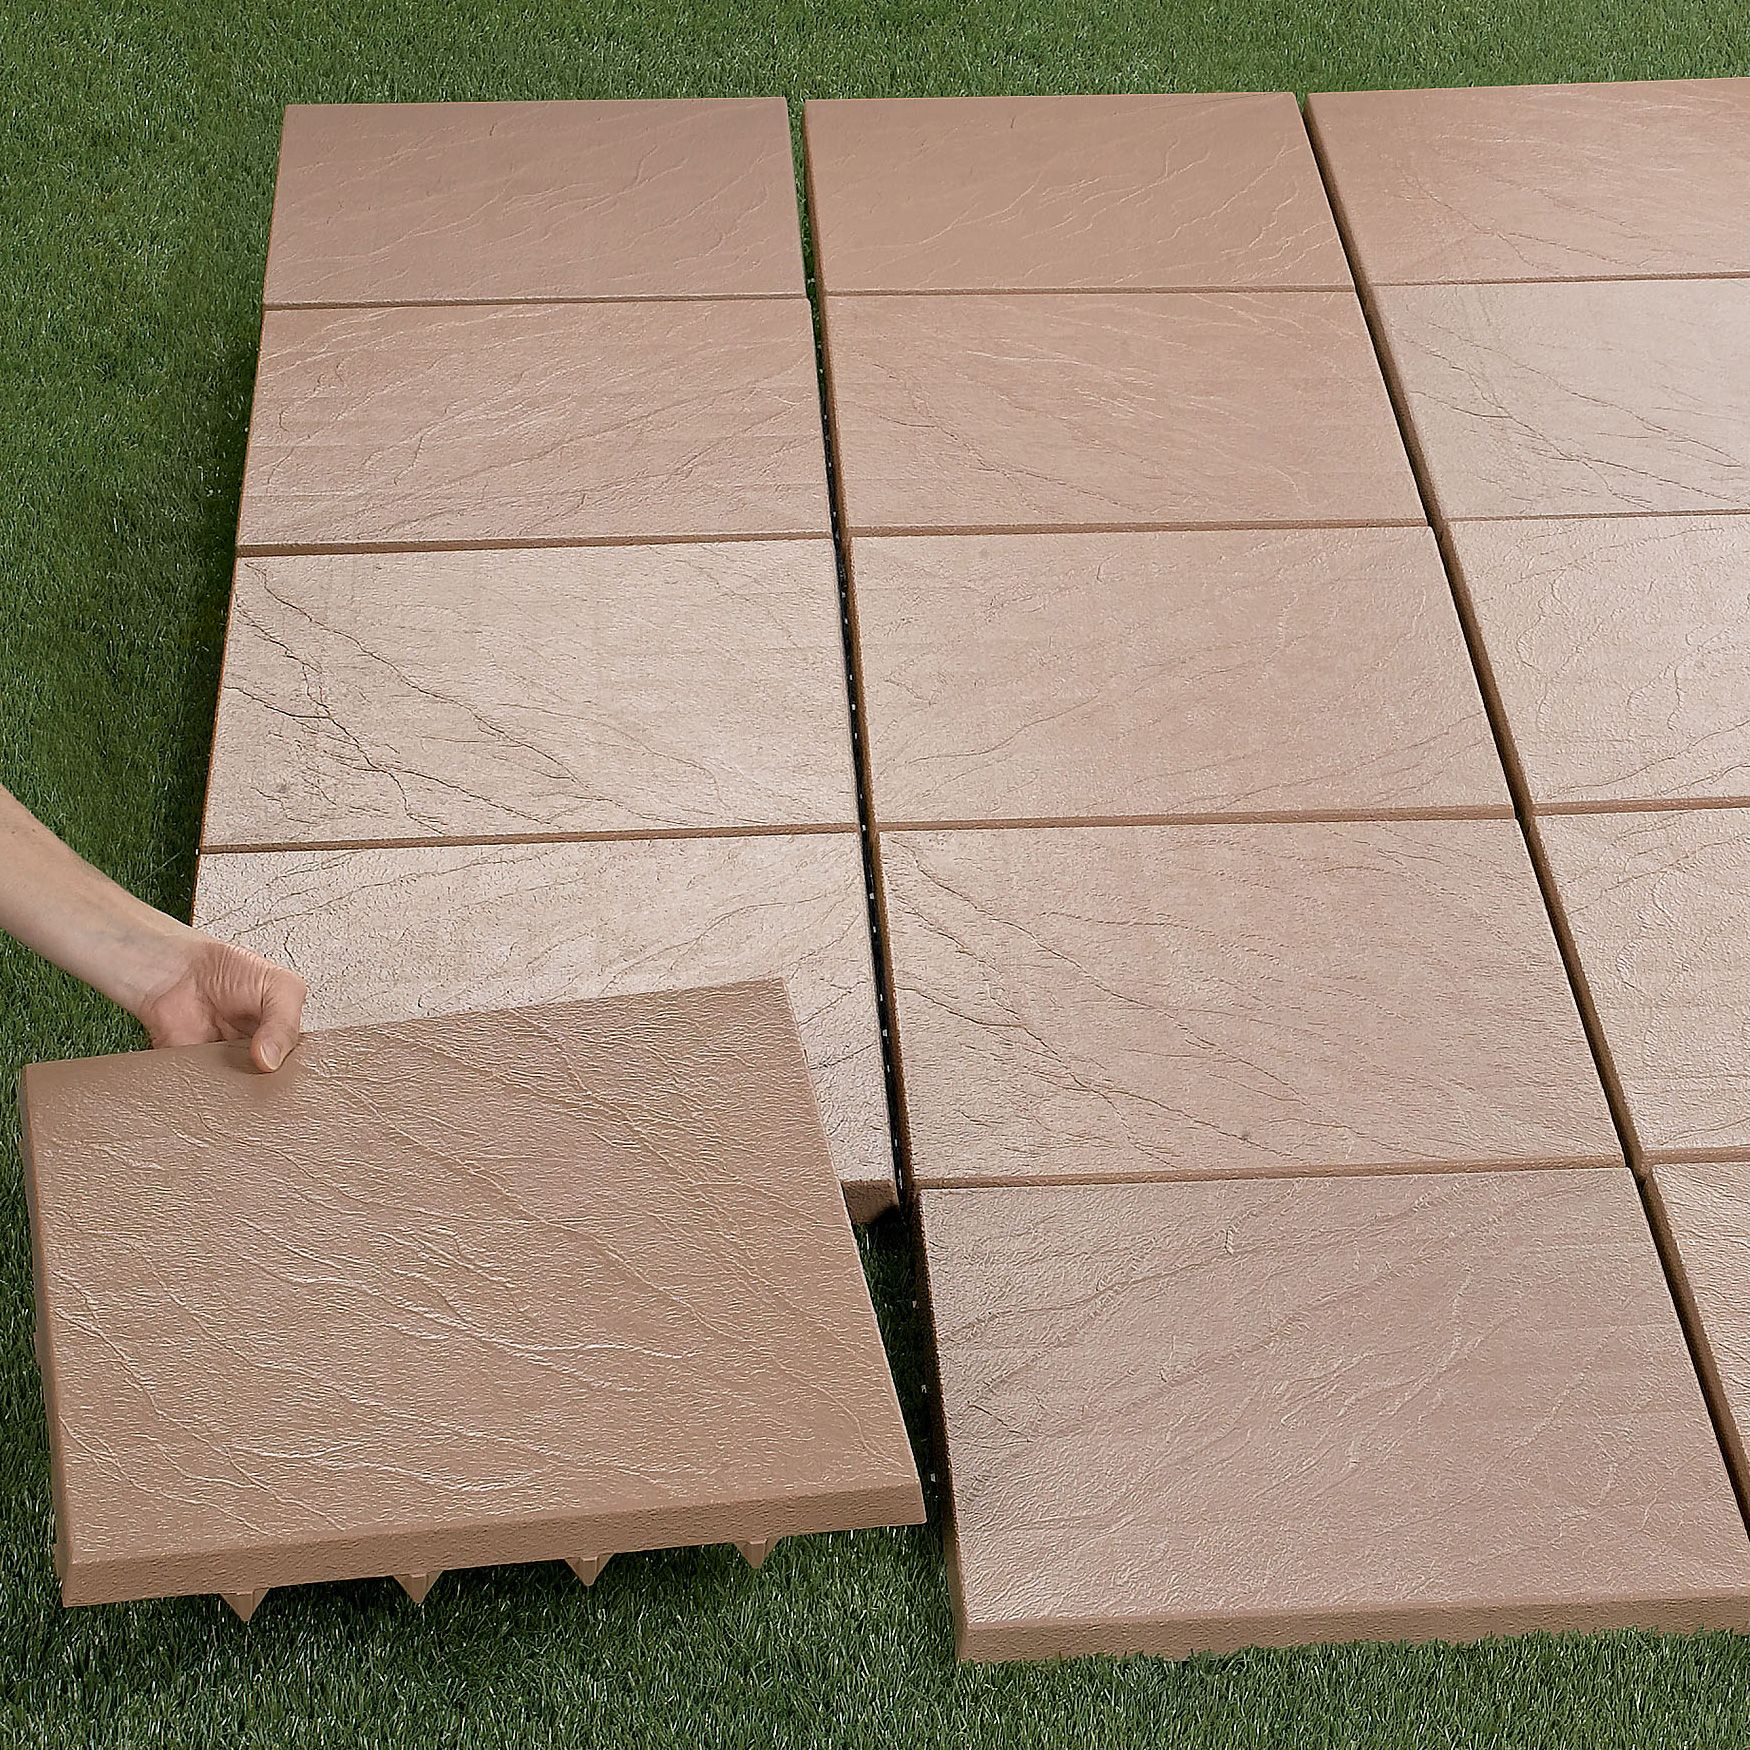 Laying Pavers Over Dirt: 20 Patio Tiles $236. Create An Instant Patio-on Any Grass